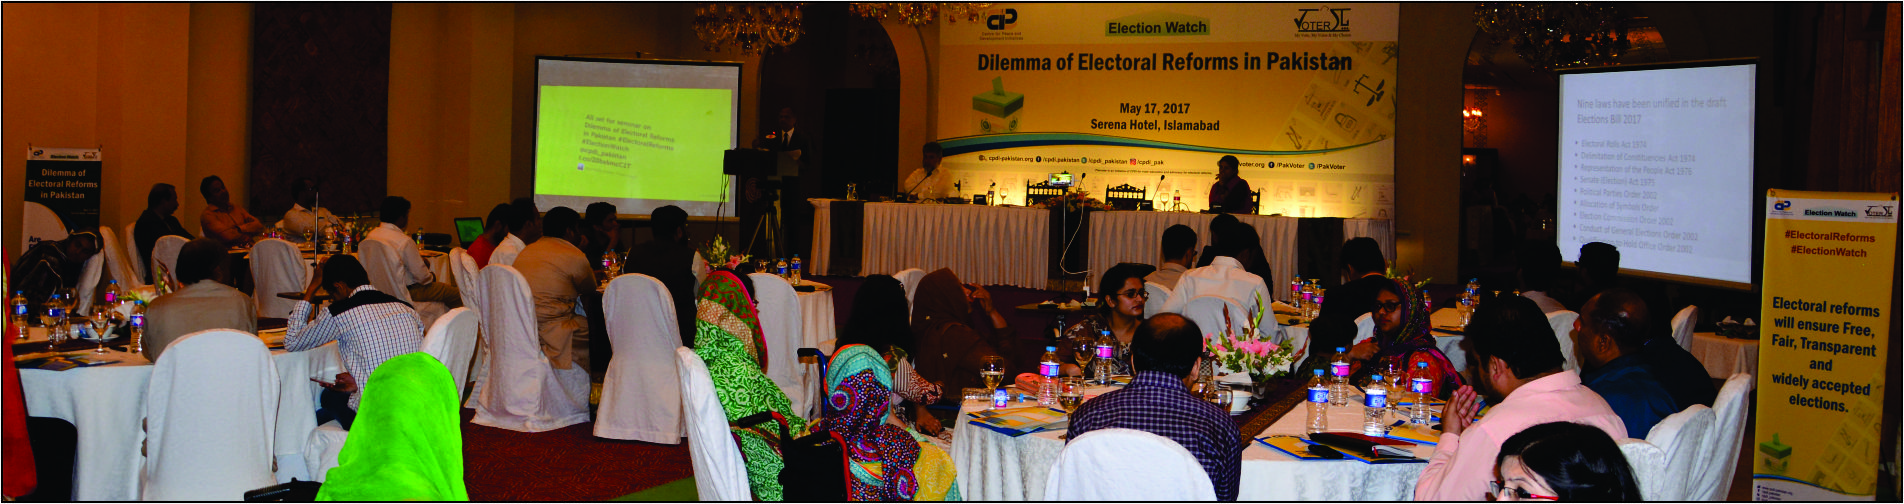 Dilemma of Electoral Reforms in Pakistan